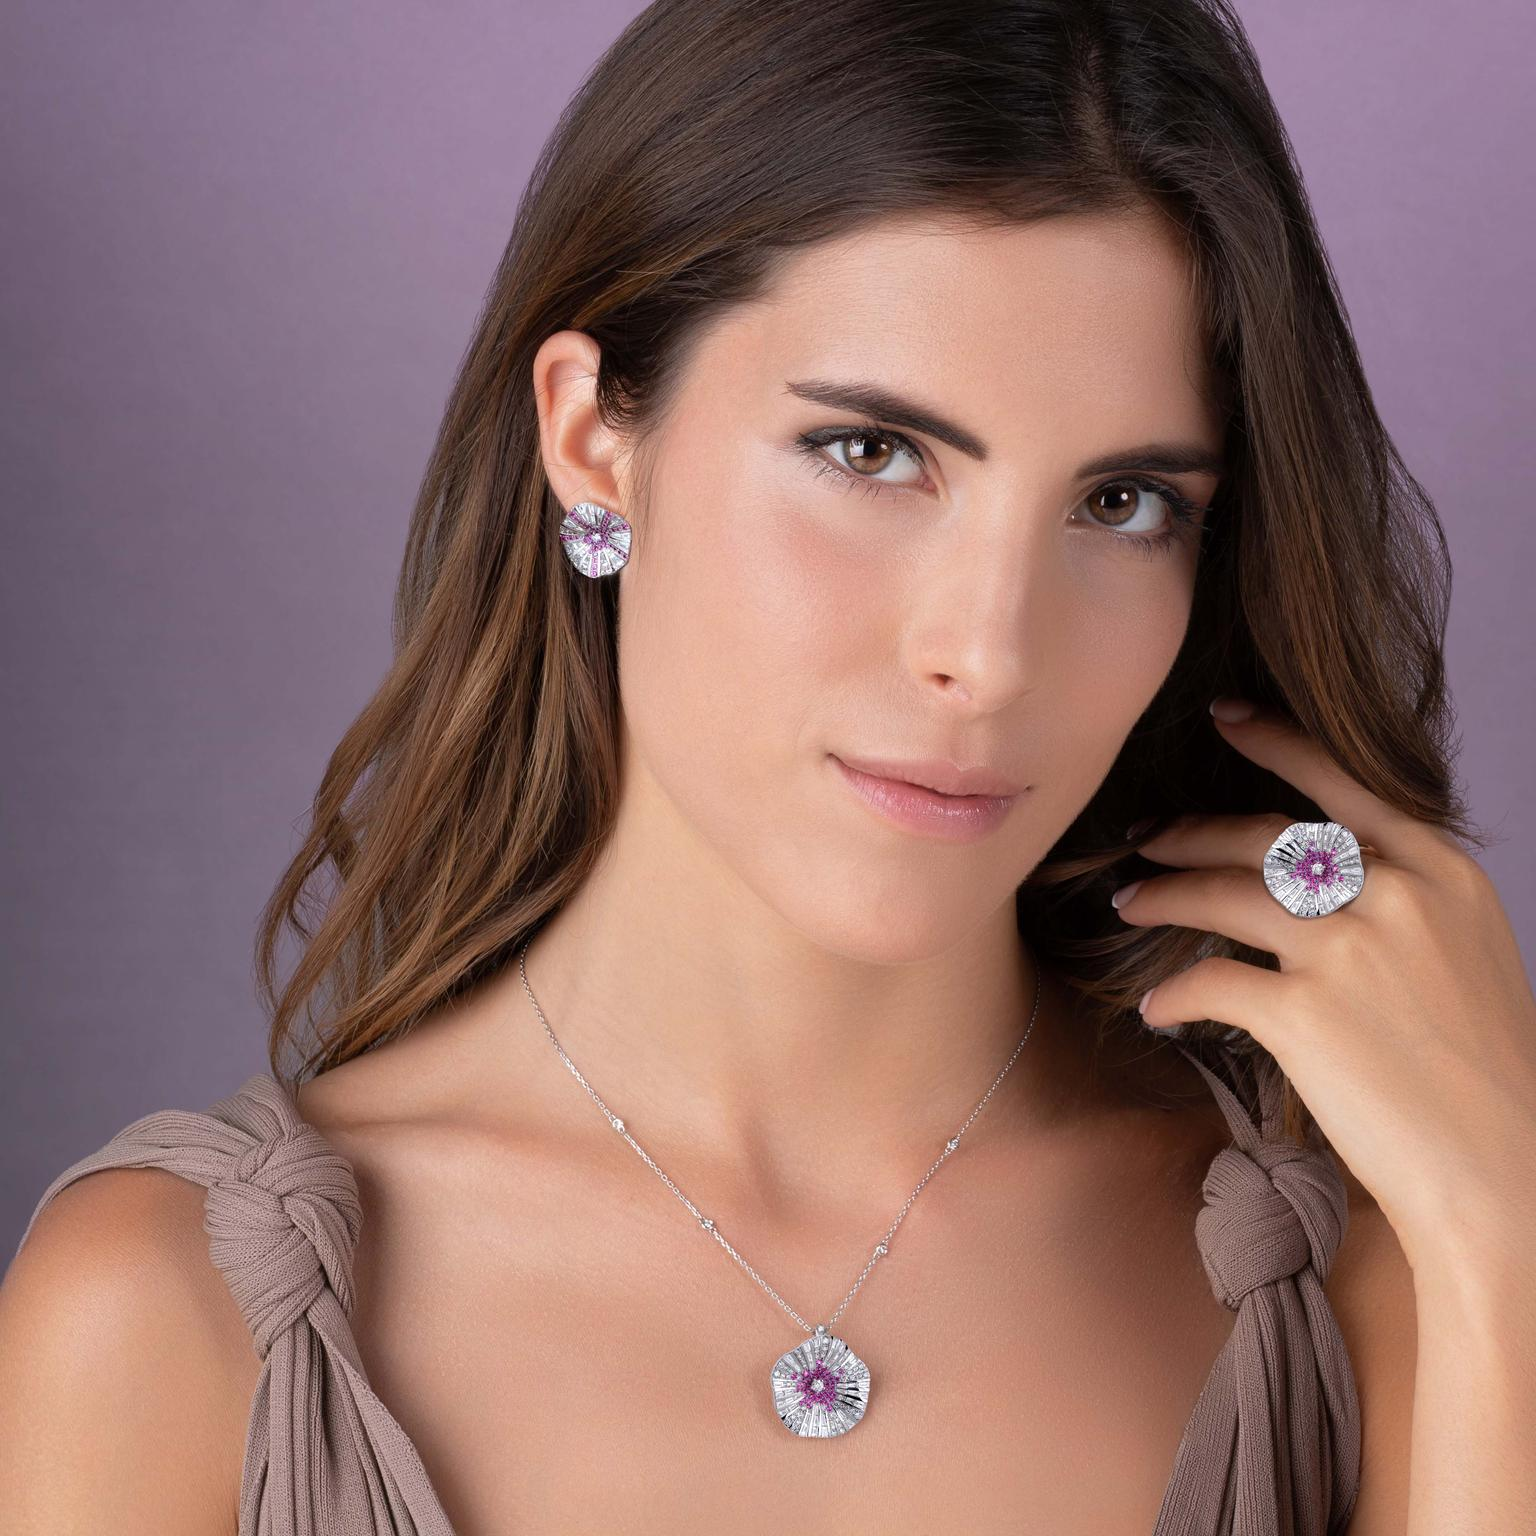 Stenzhorn Belle pink sapphire and white diamond ring, necklace and earrings on model